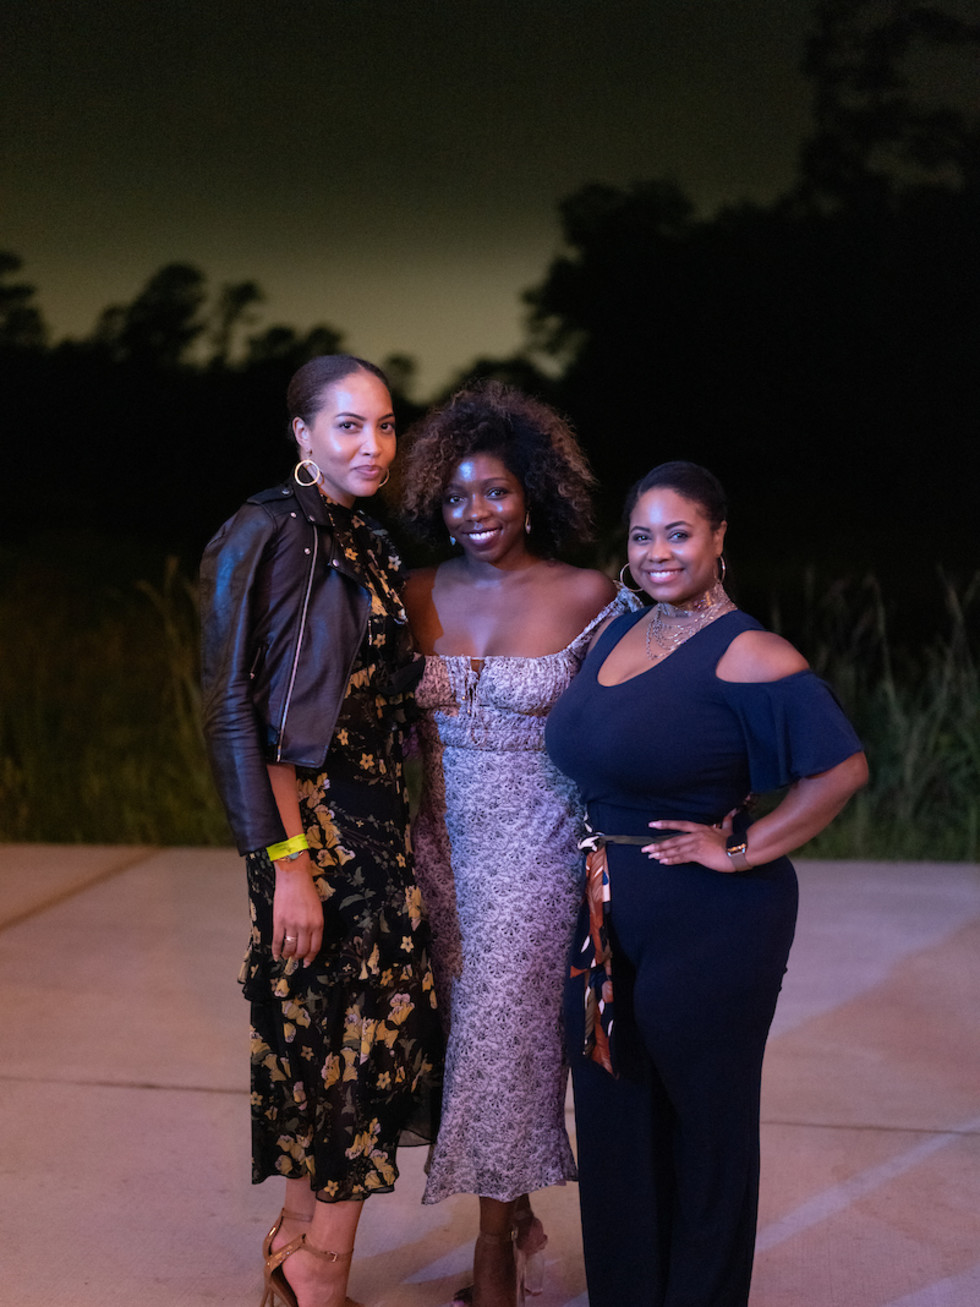 Memorial Park Conservancy Urban Wild Glow in the Glades 2021 Danielle O'Bannon, Zoe Cadore, Iman Garrett-Price